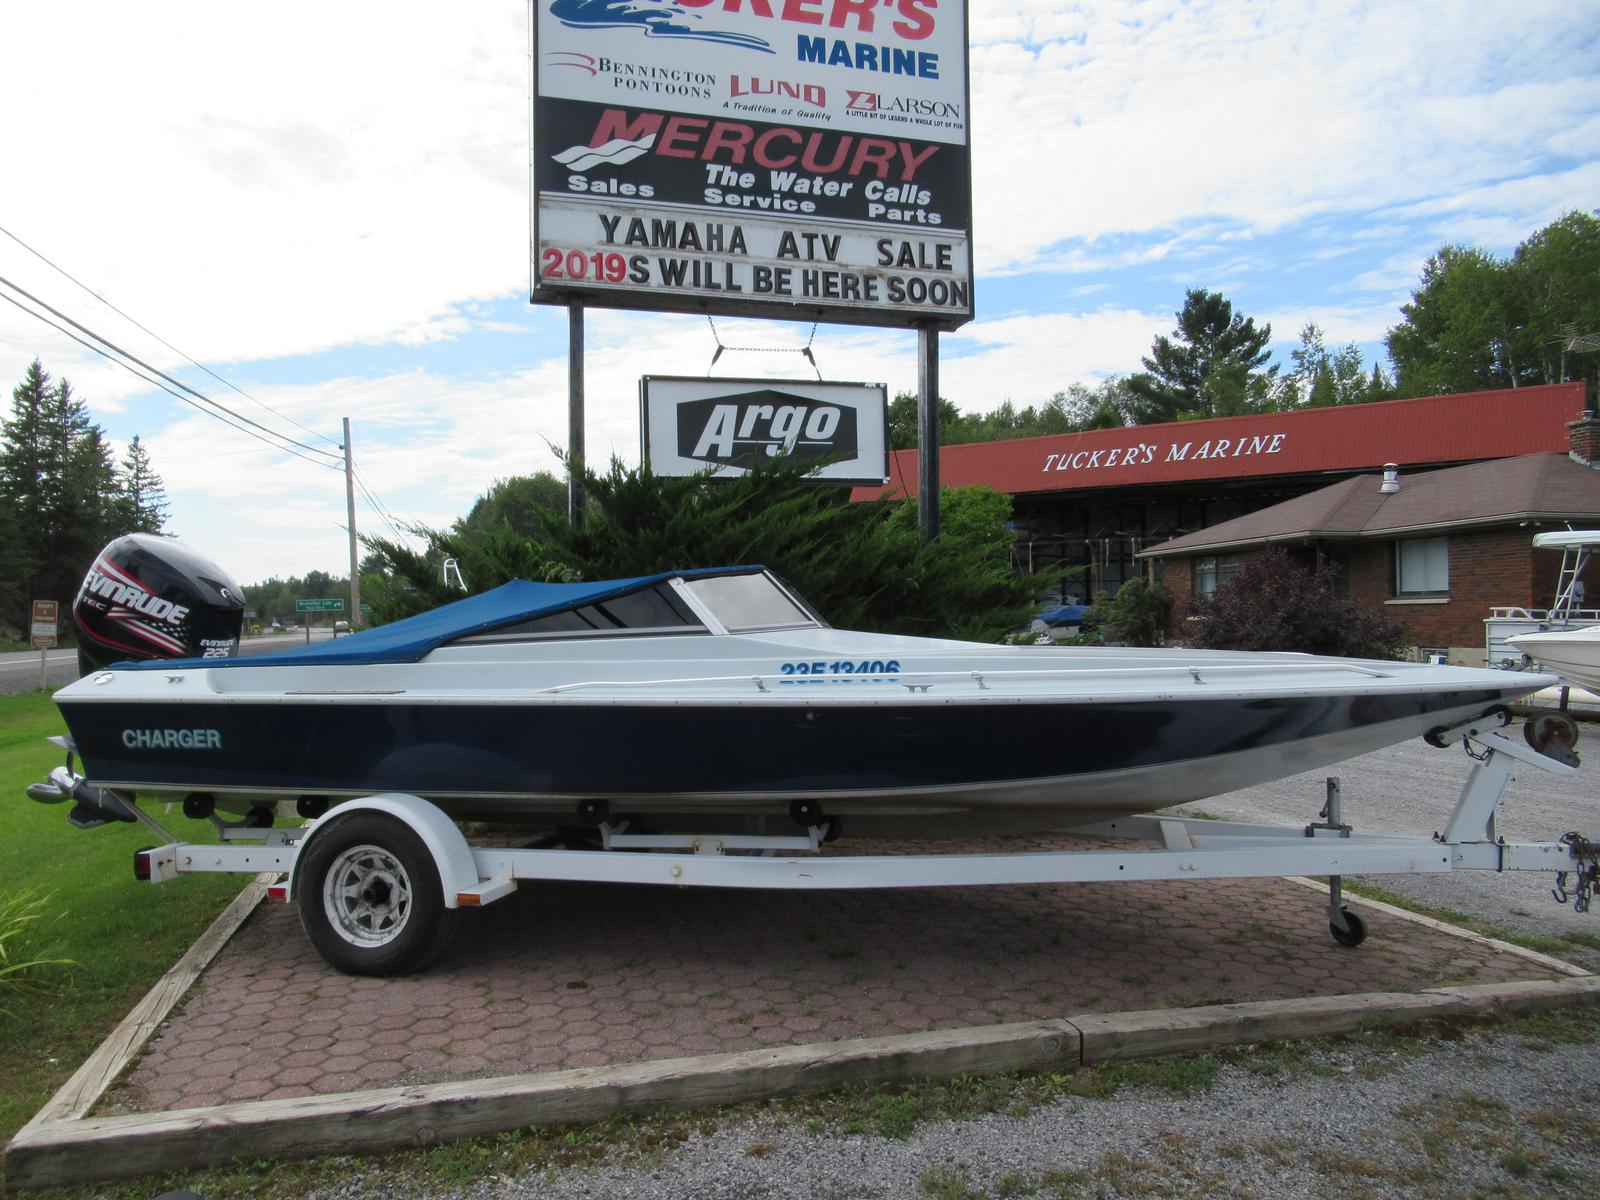 Inventory Tucker's Marine Apsley, ON (705) 656-4402